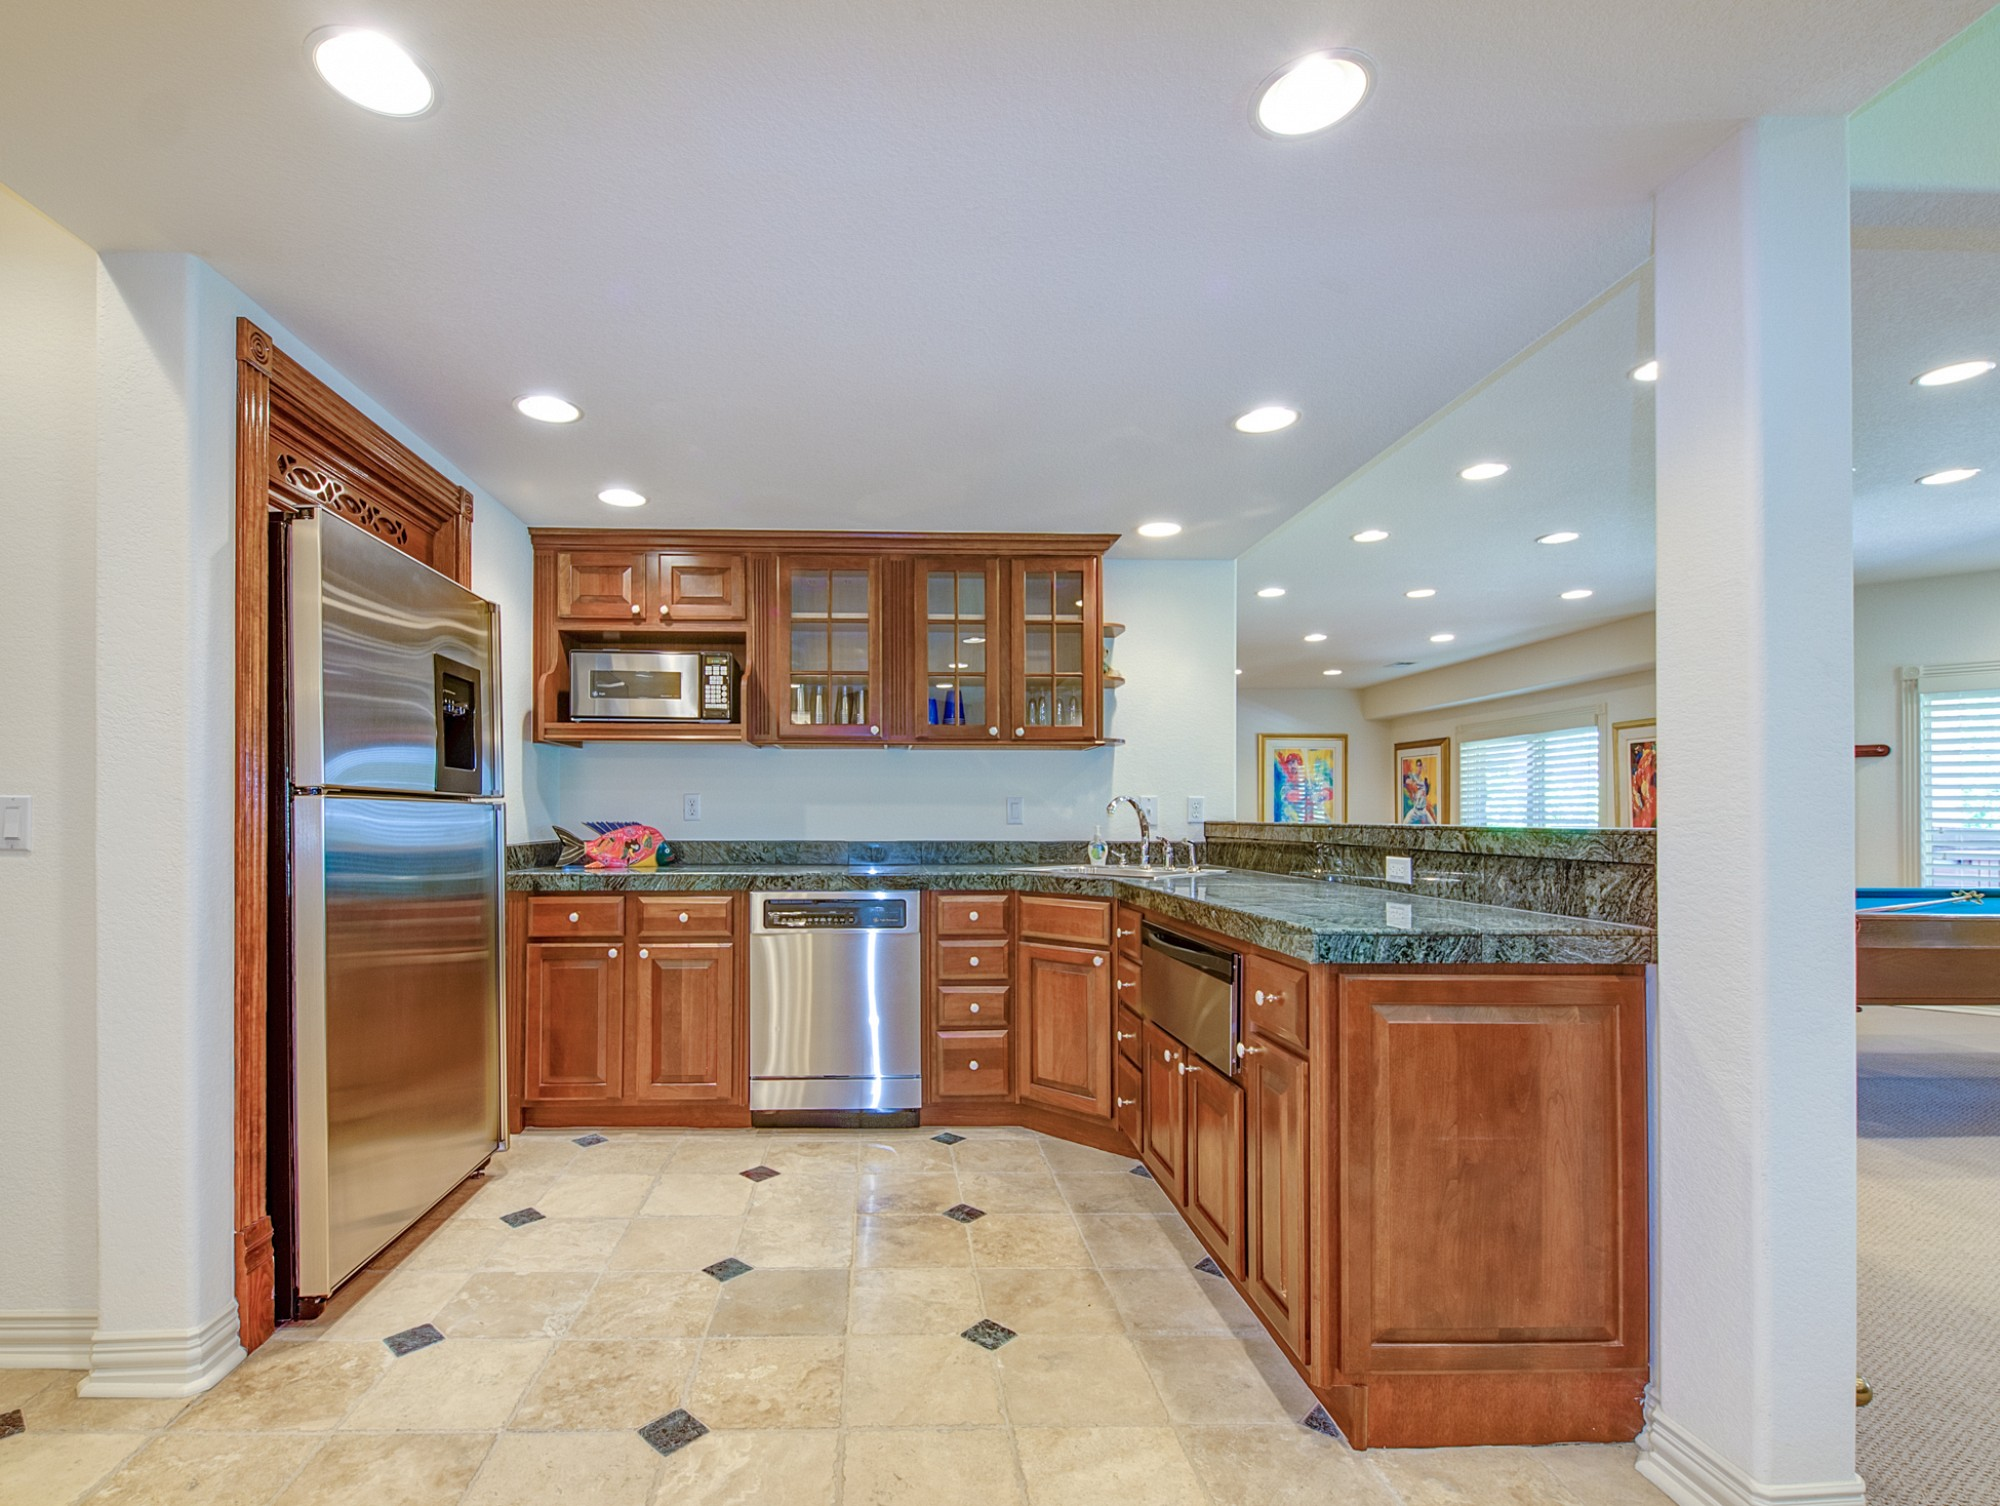 4240 E Perry Pkwy, Greenwood Village, CO 80121